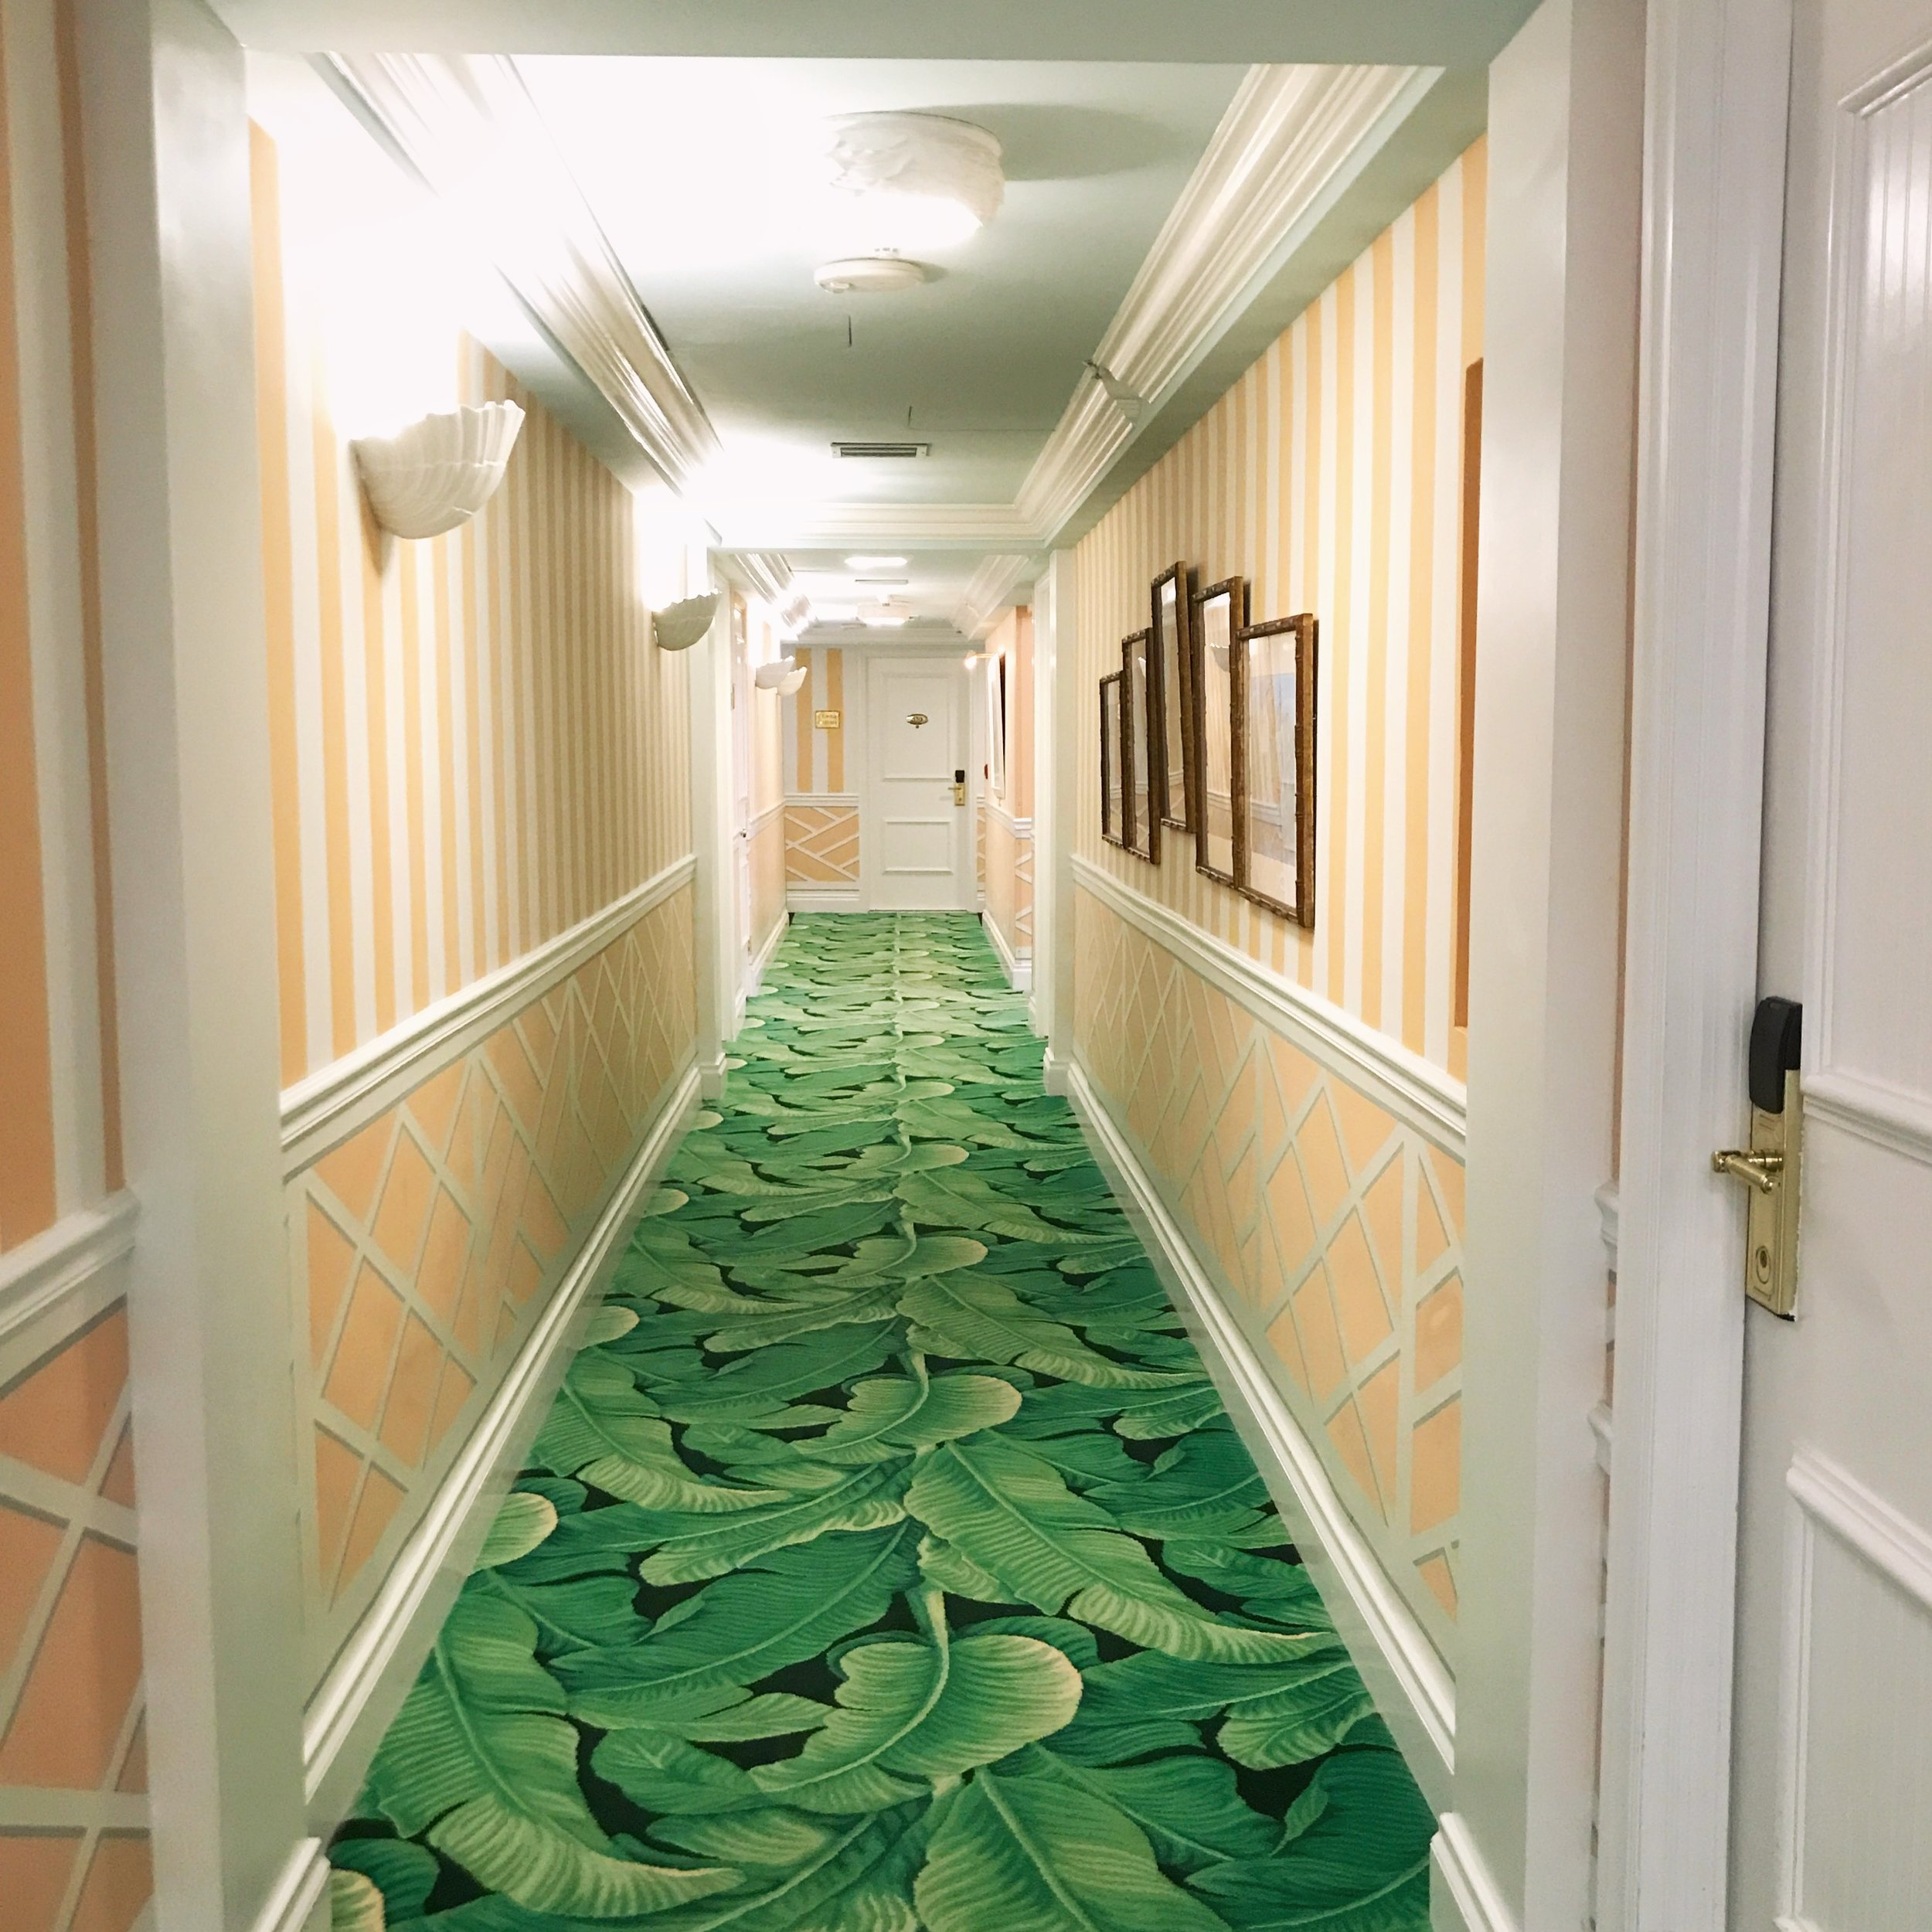 The Colony Palm Beach hallway